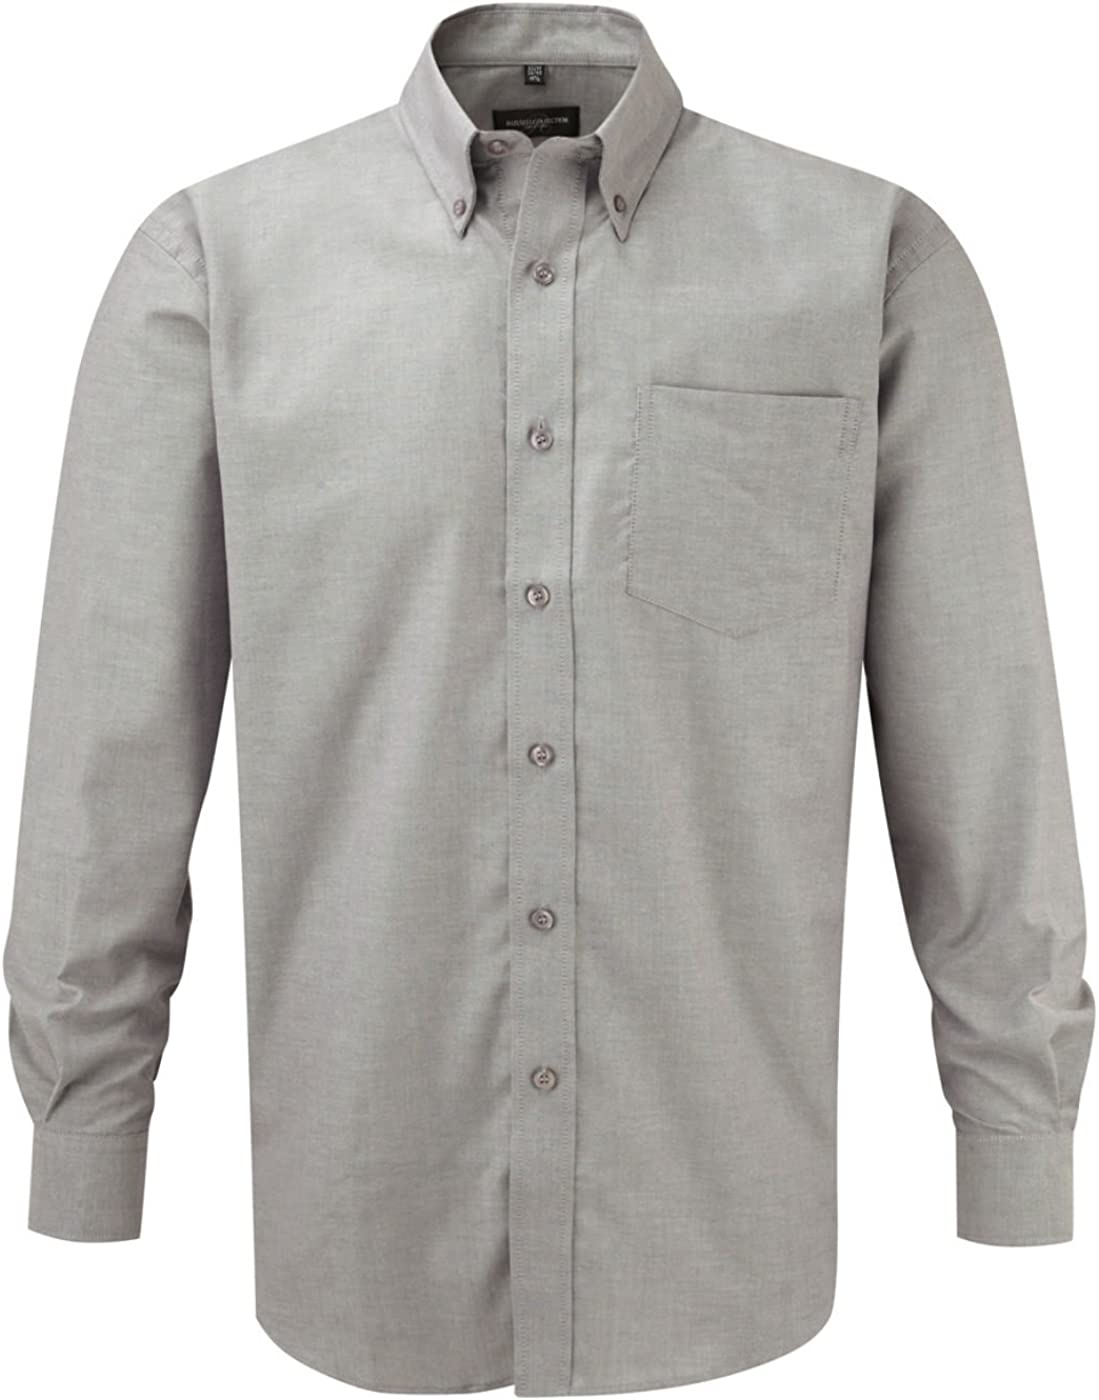 Russell Oxford Long Sleeve Shirt Easy Care